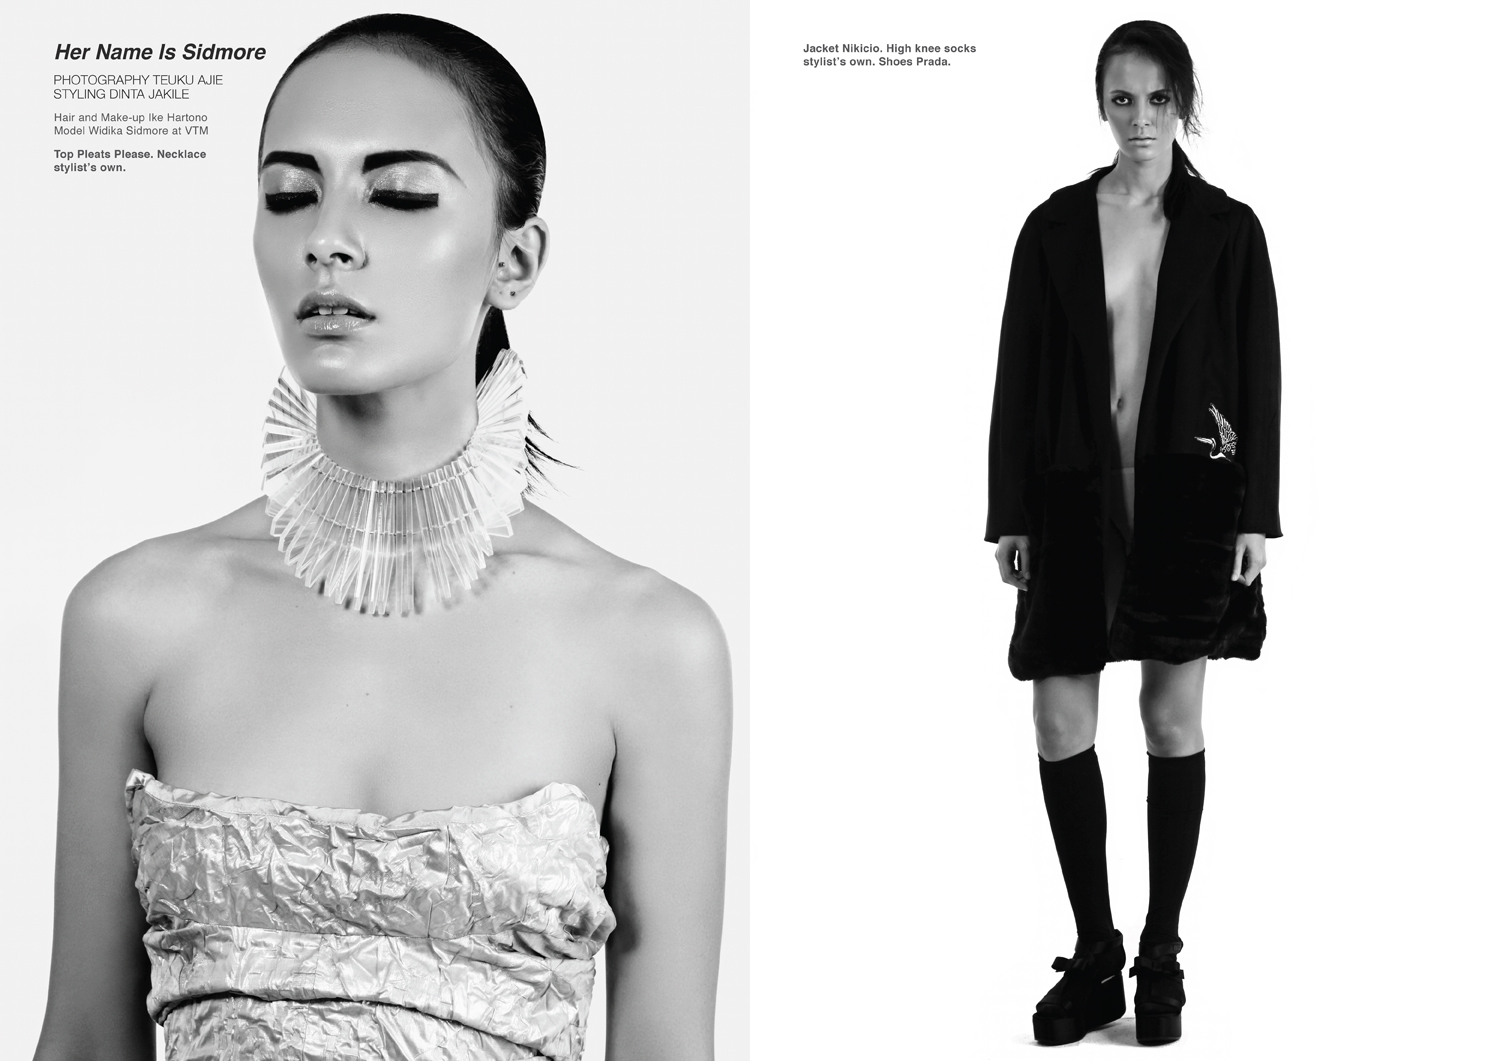 Left page, Top Pleats Please. Necklace stylist's own. Right page, Jacket Nikicio. High knee socks stylist's own. Shoes Prada.